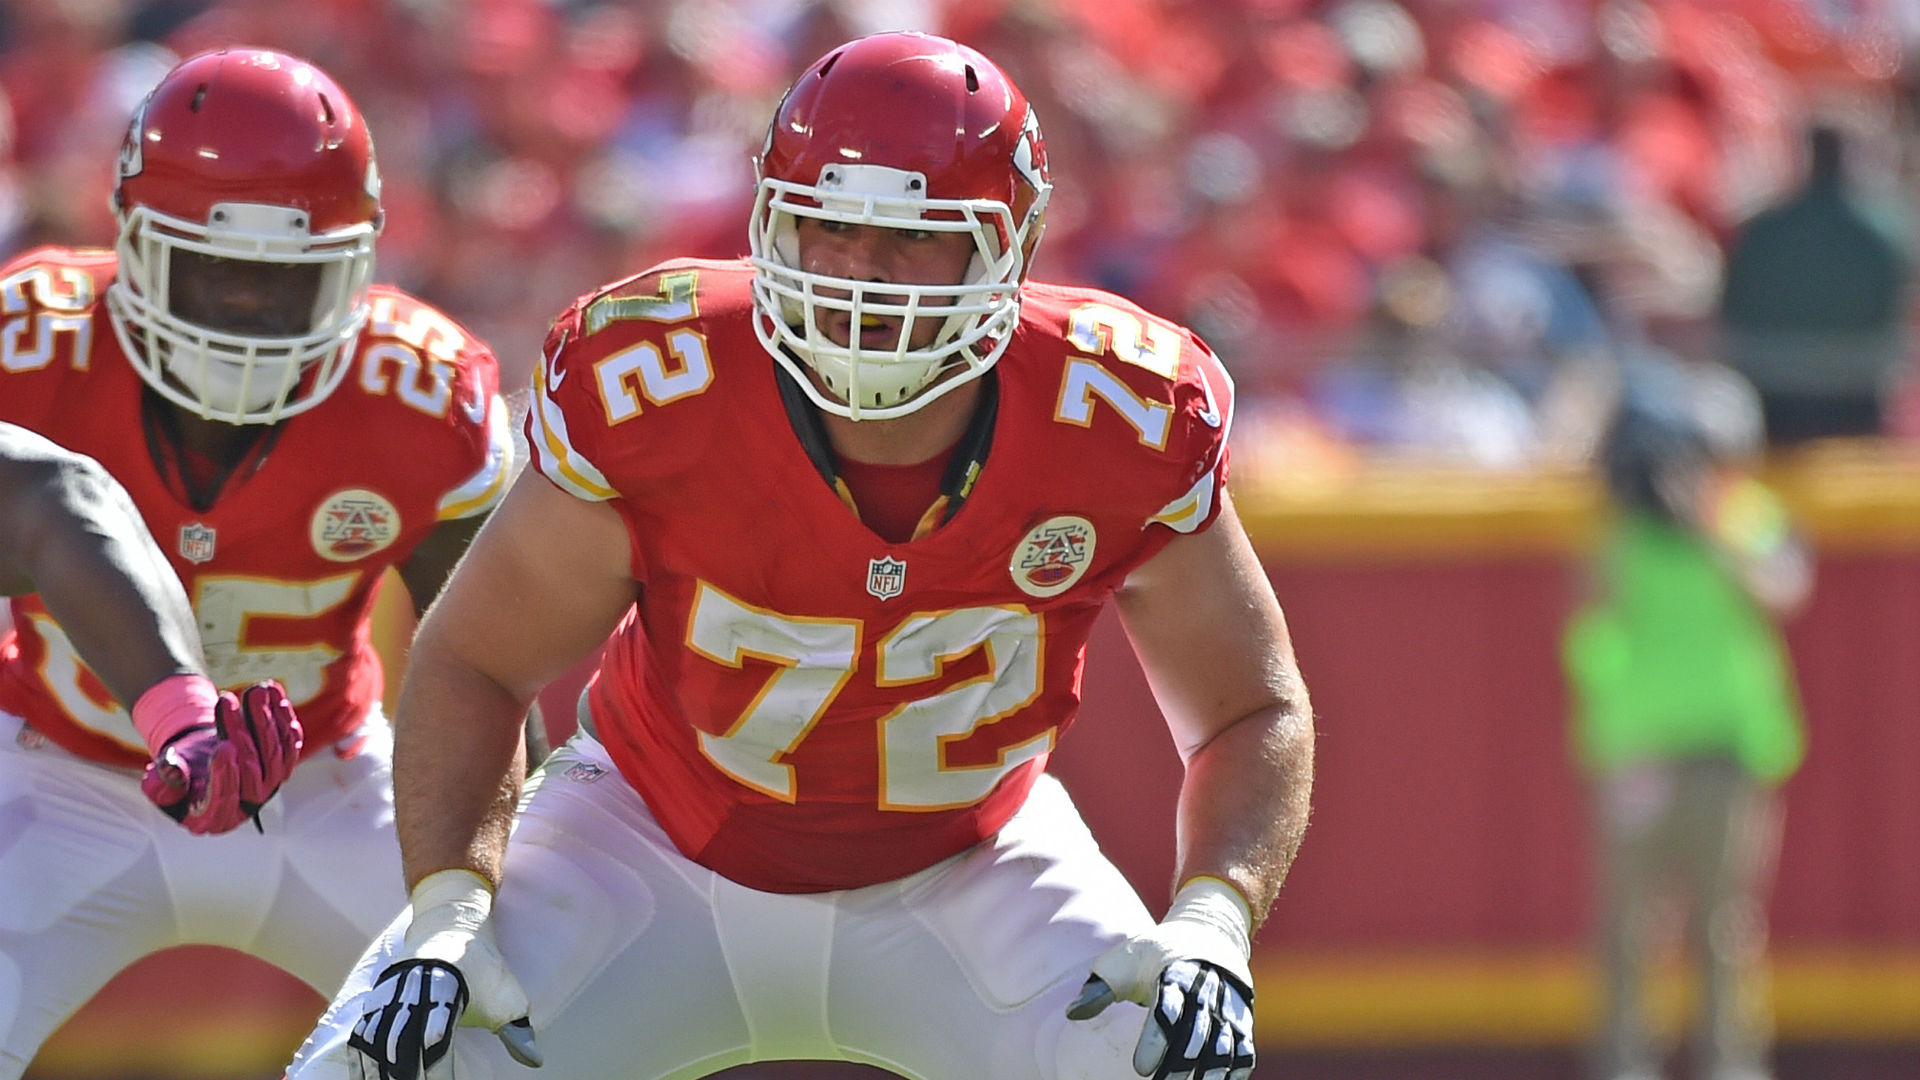 Chiefs' Eric Fisher (groin) to miss several games after surgery, reports say